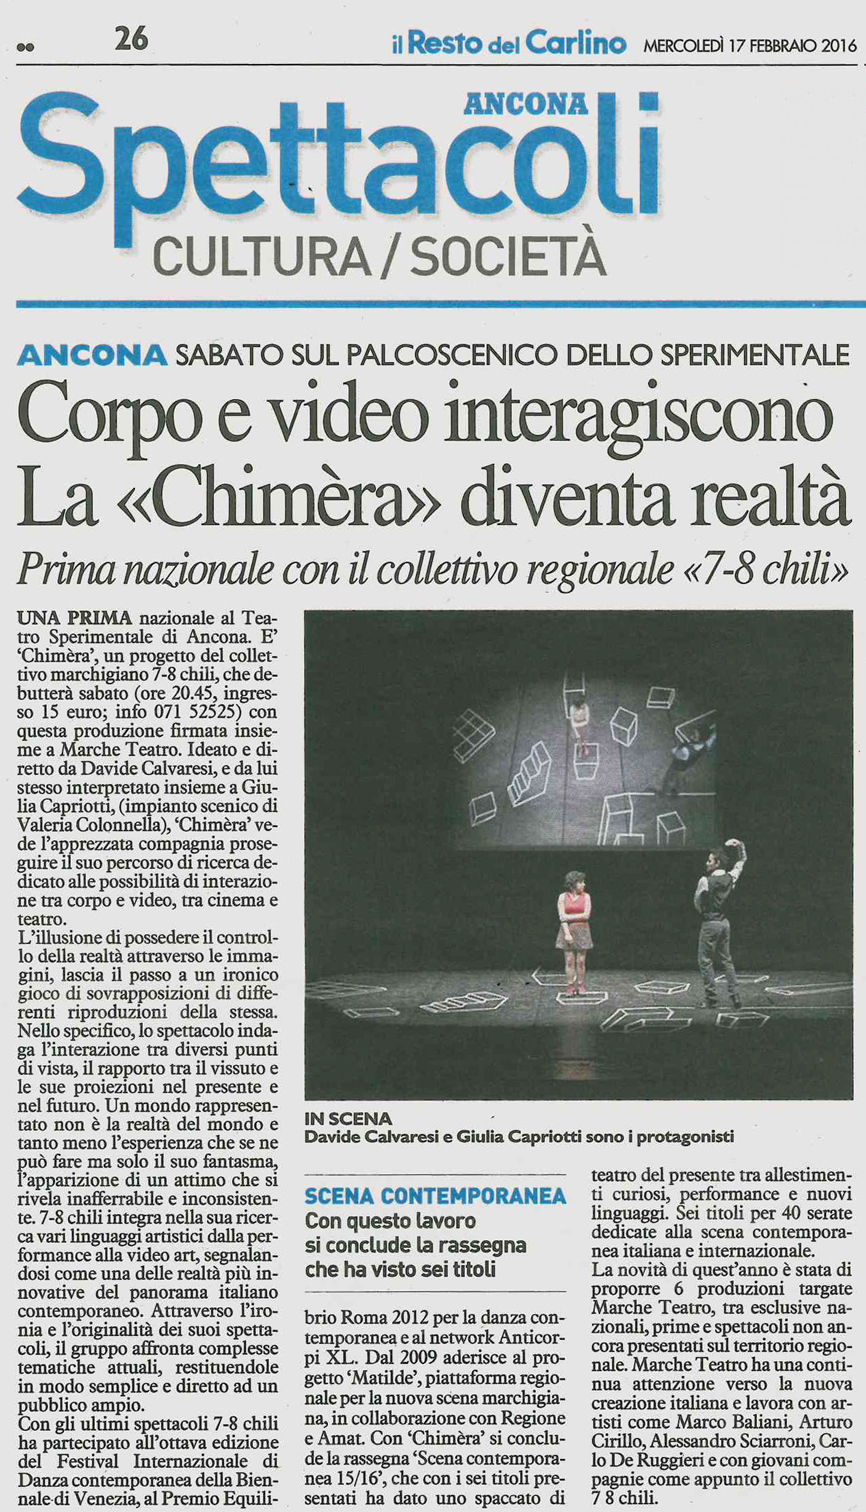 2016.02.17-Corpo-e-video-interagiscono---Il-Resto-del-Carlino